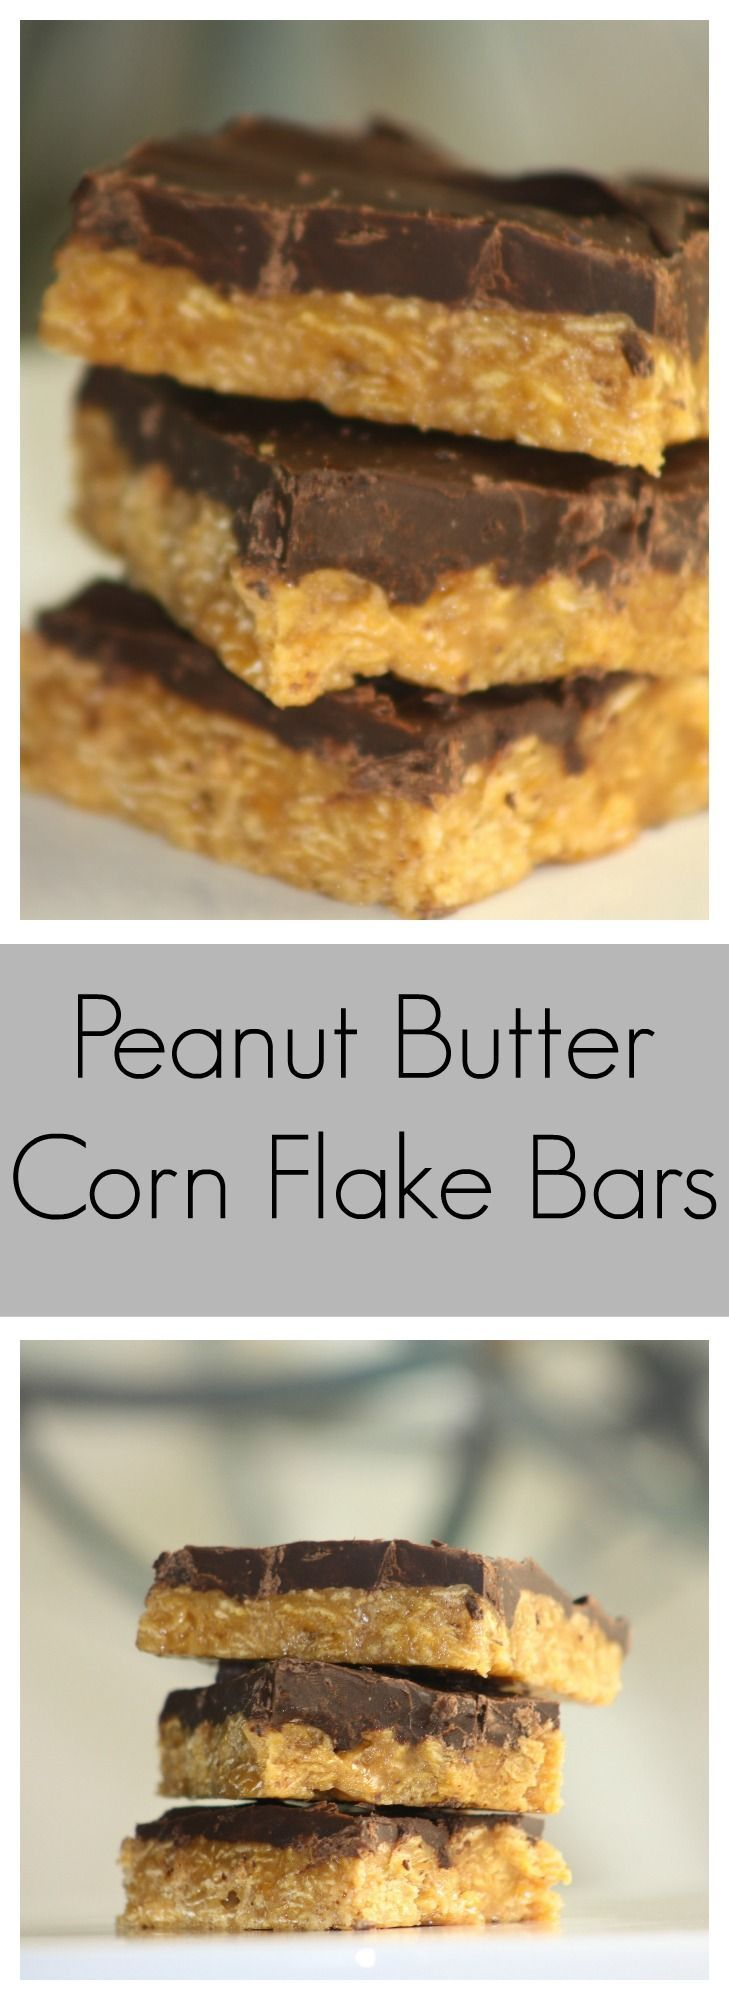 PB corn flake bars